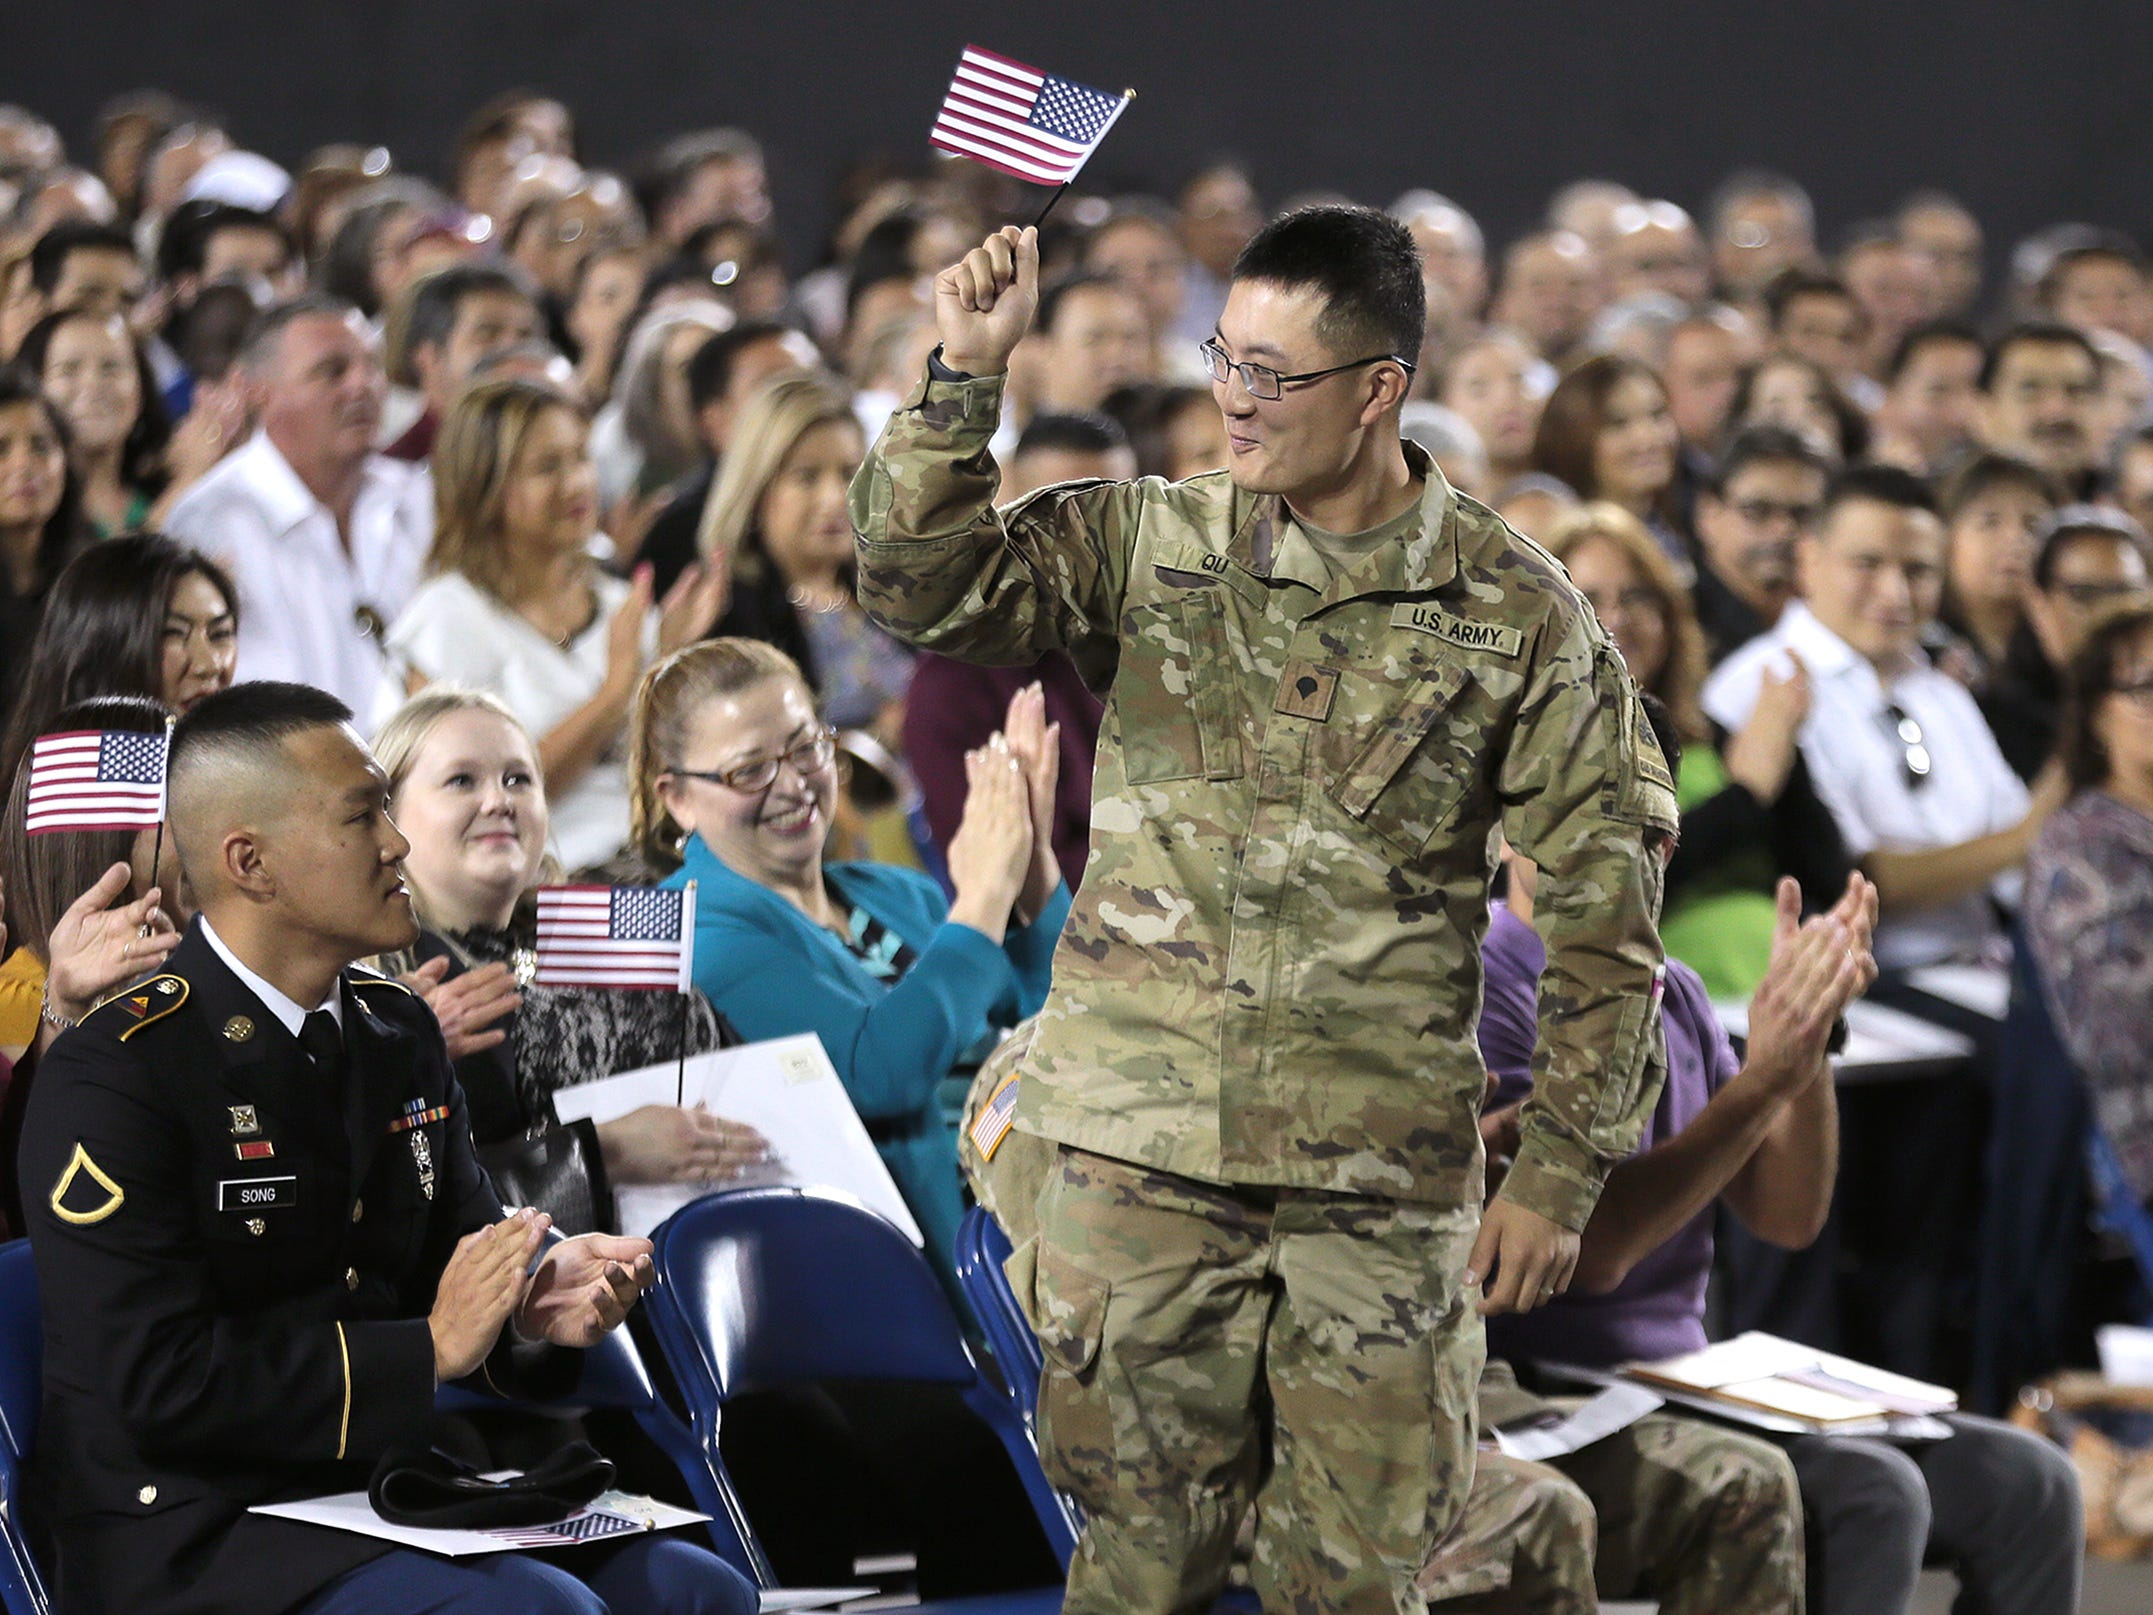 Zhan Qu of the 1st Armored Division Band at Fort Bliss acknowledges the crowd after being introduced at a citizenship ceremony Thursday for 740 people at the El Paso County Coliseum. U.S. District Judge David C. Guaderrama administered the oath of citizenship.